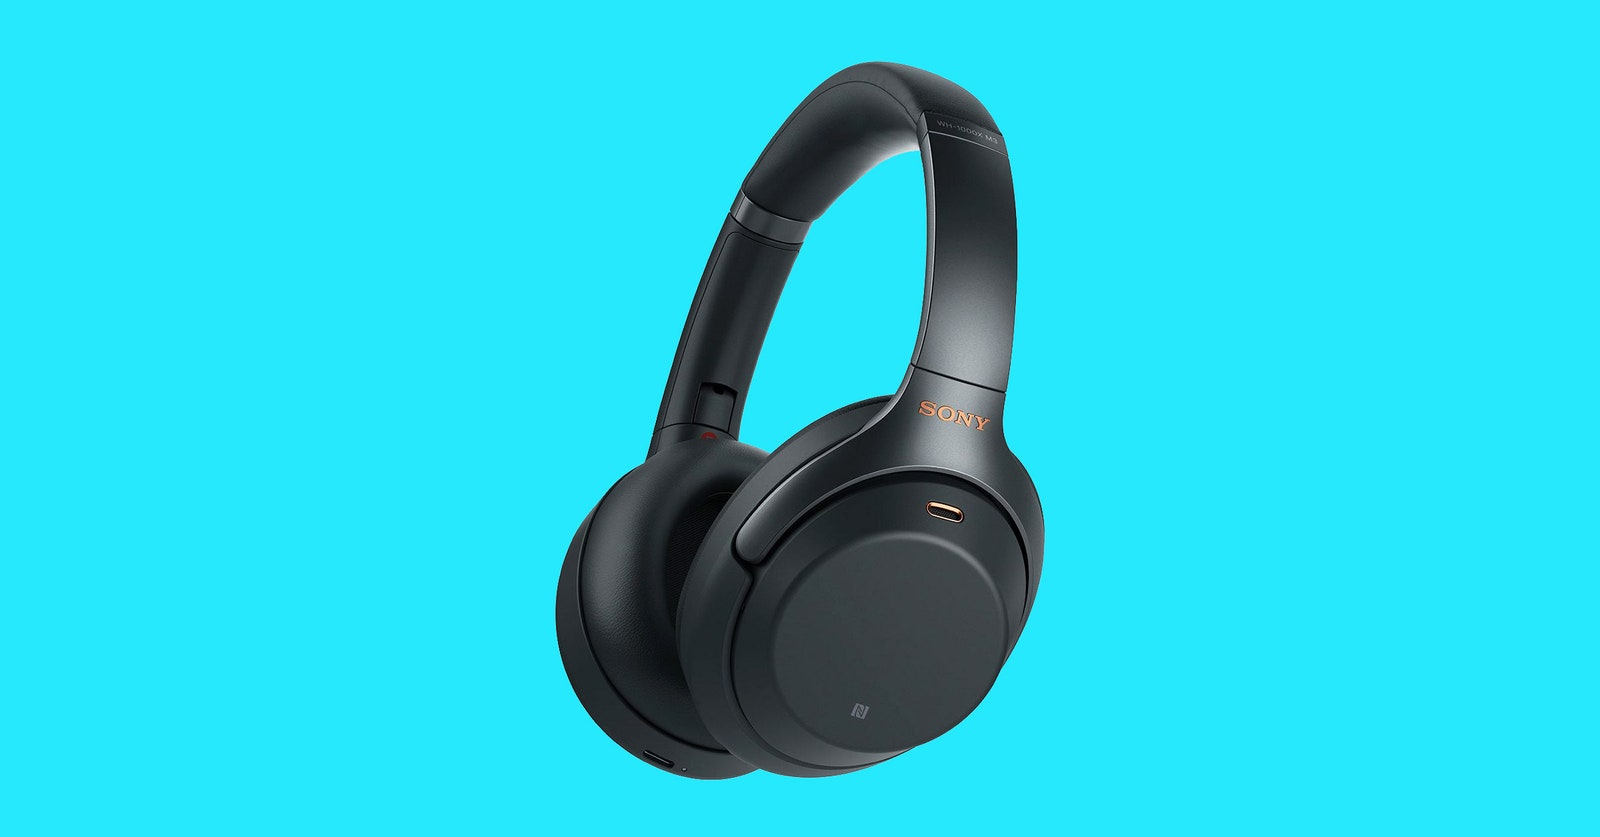 The 13 Best Noise-Canceling Headphones and Earbuds (2021)